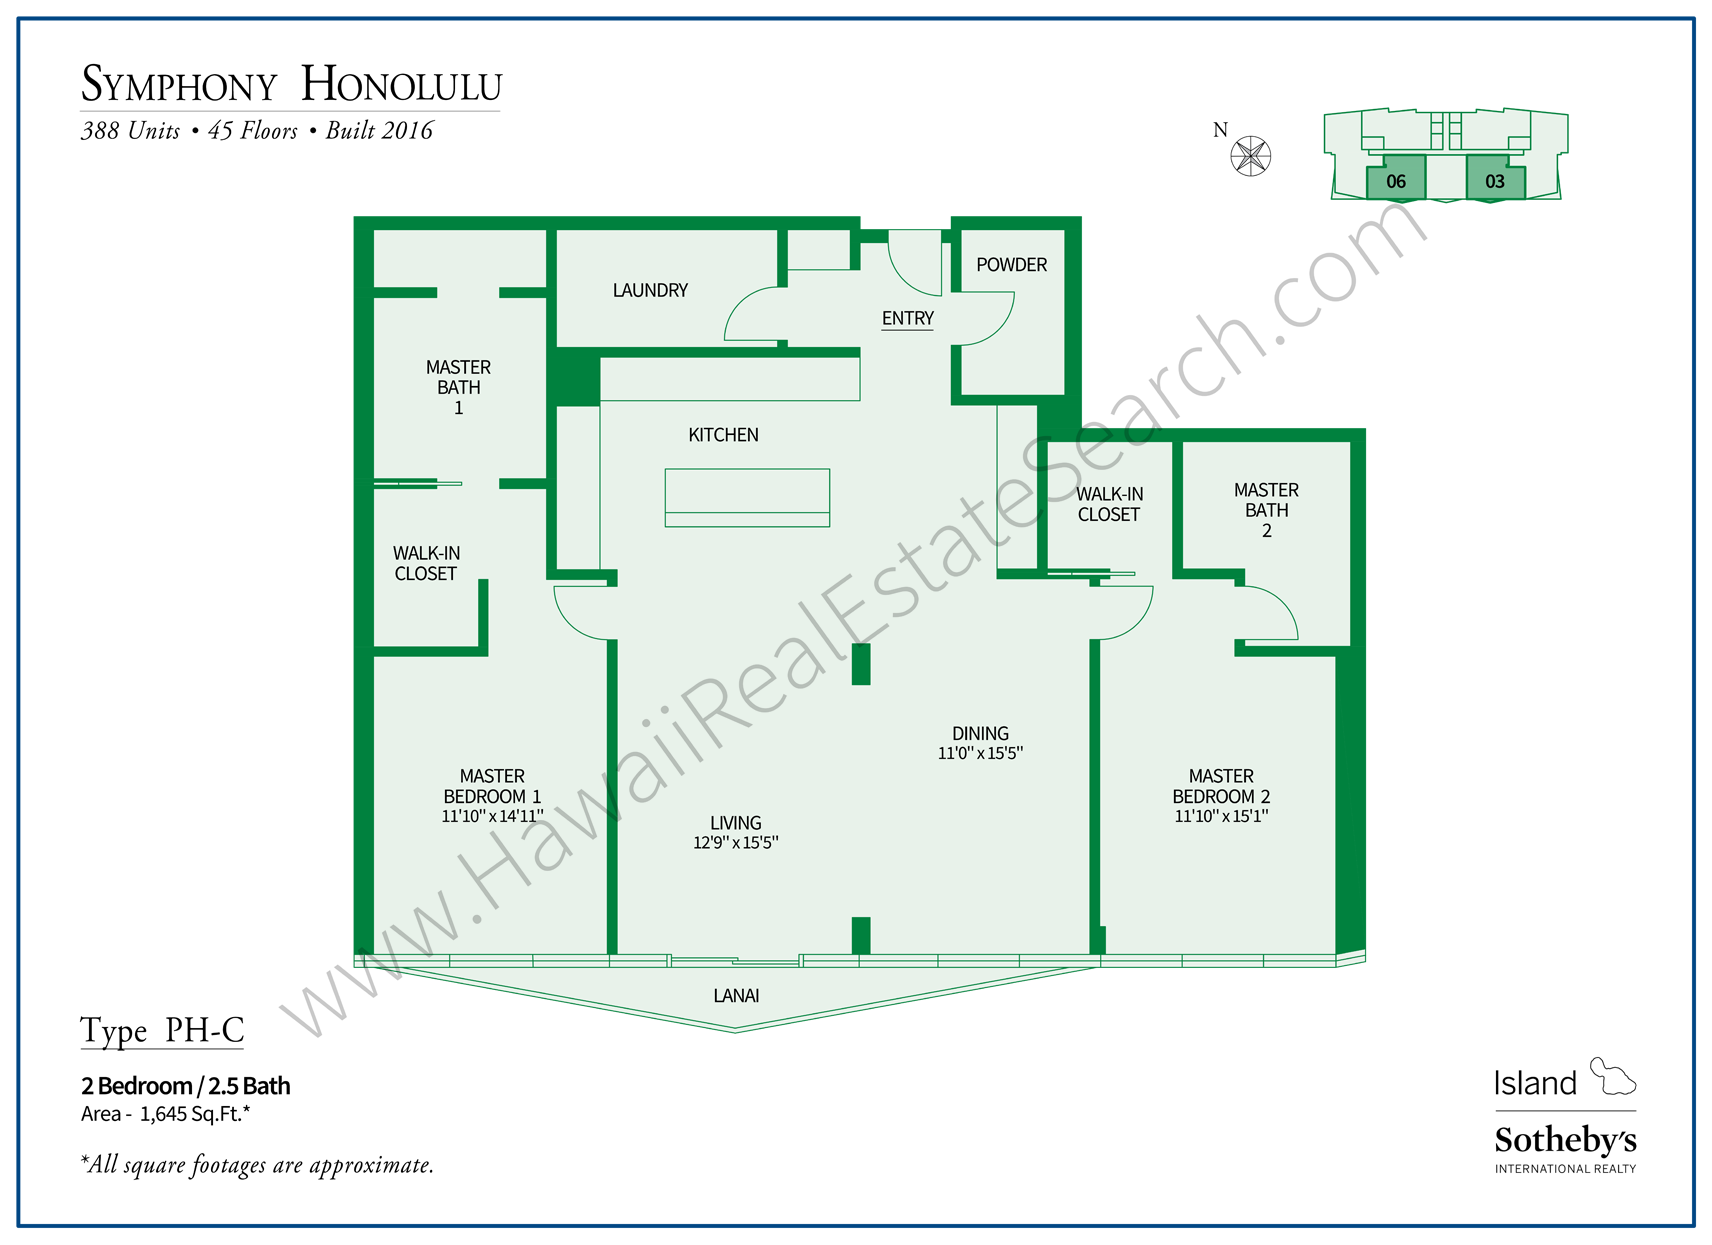 Symphony Honolulu Floor Plan Penthouse C